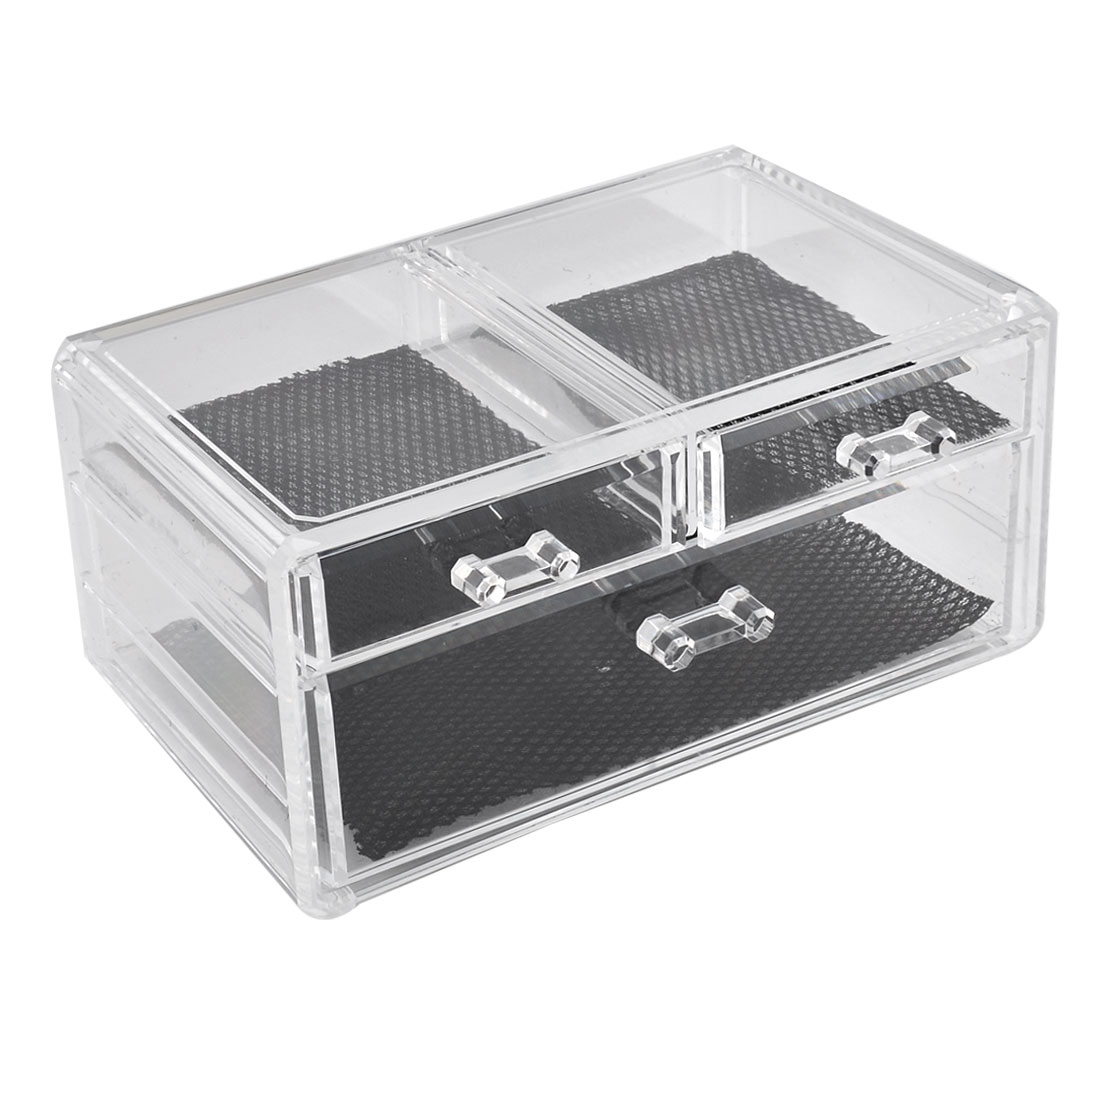 Lady Dresser Acrylic Cosmetic Organizer Storage Drawer Case Display Box Jewelry Holder